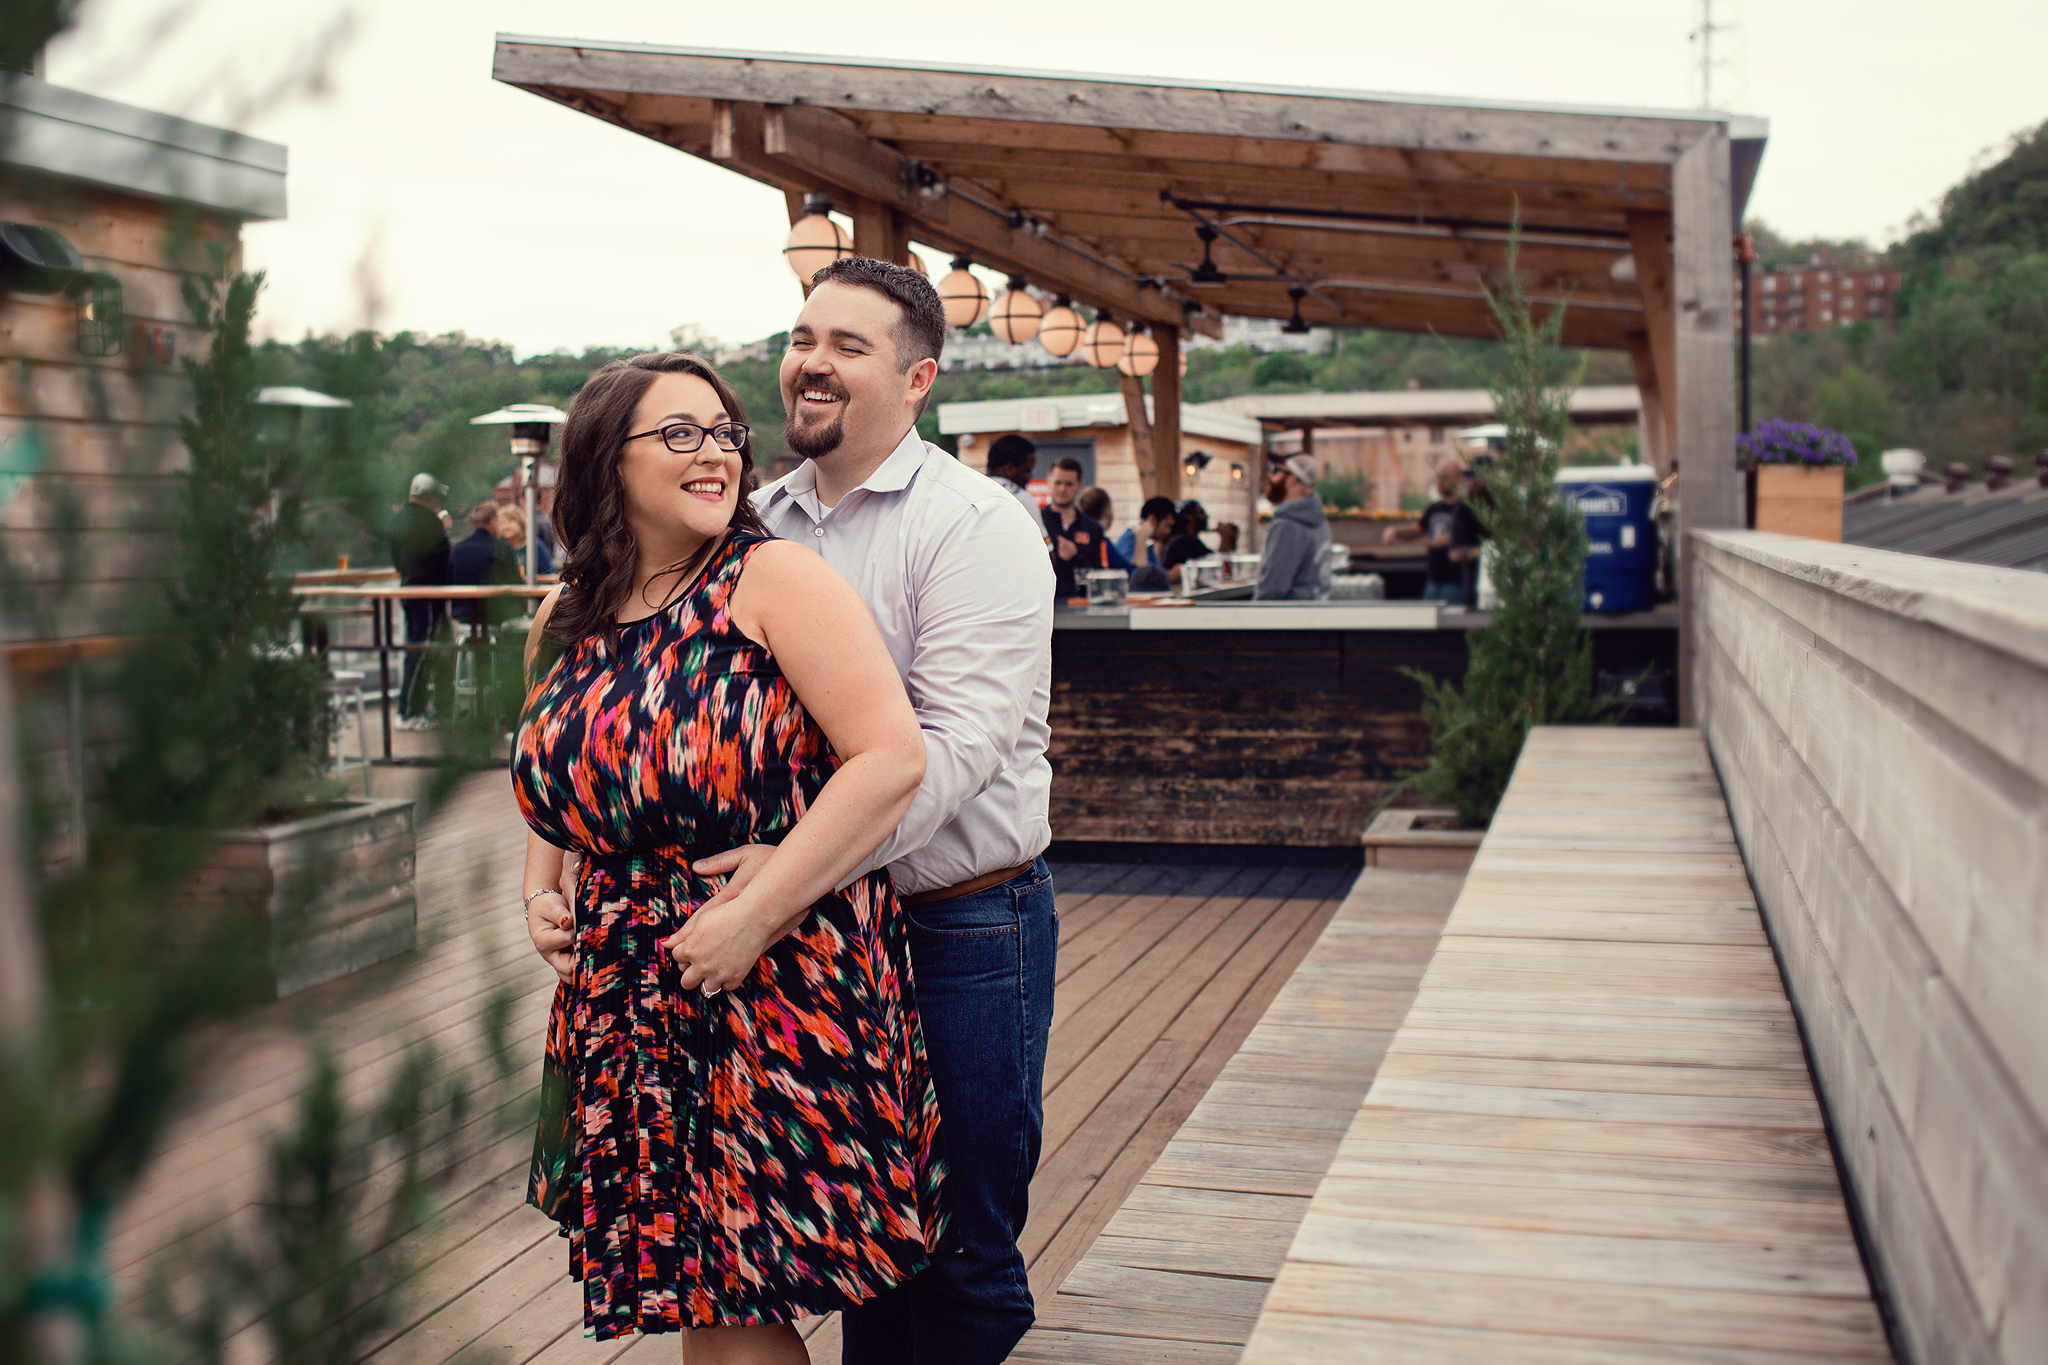 Cincinnati-Dayton-OH-Engagement-Session-Traveling-Wedding-Photographer-3.jpg